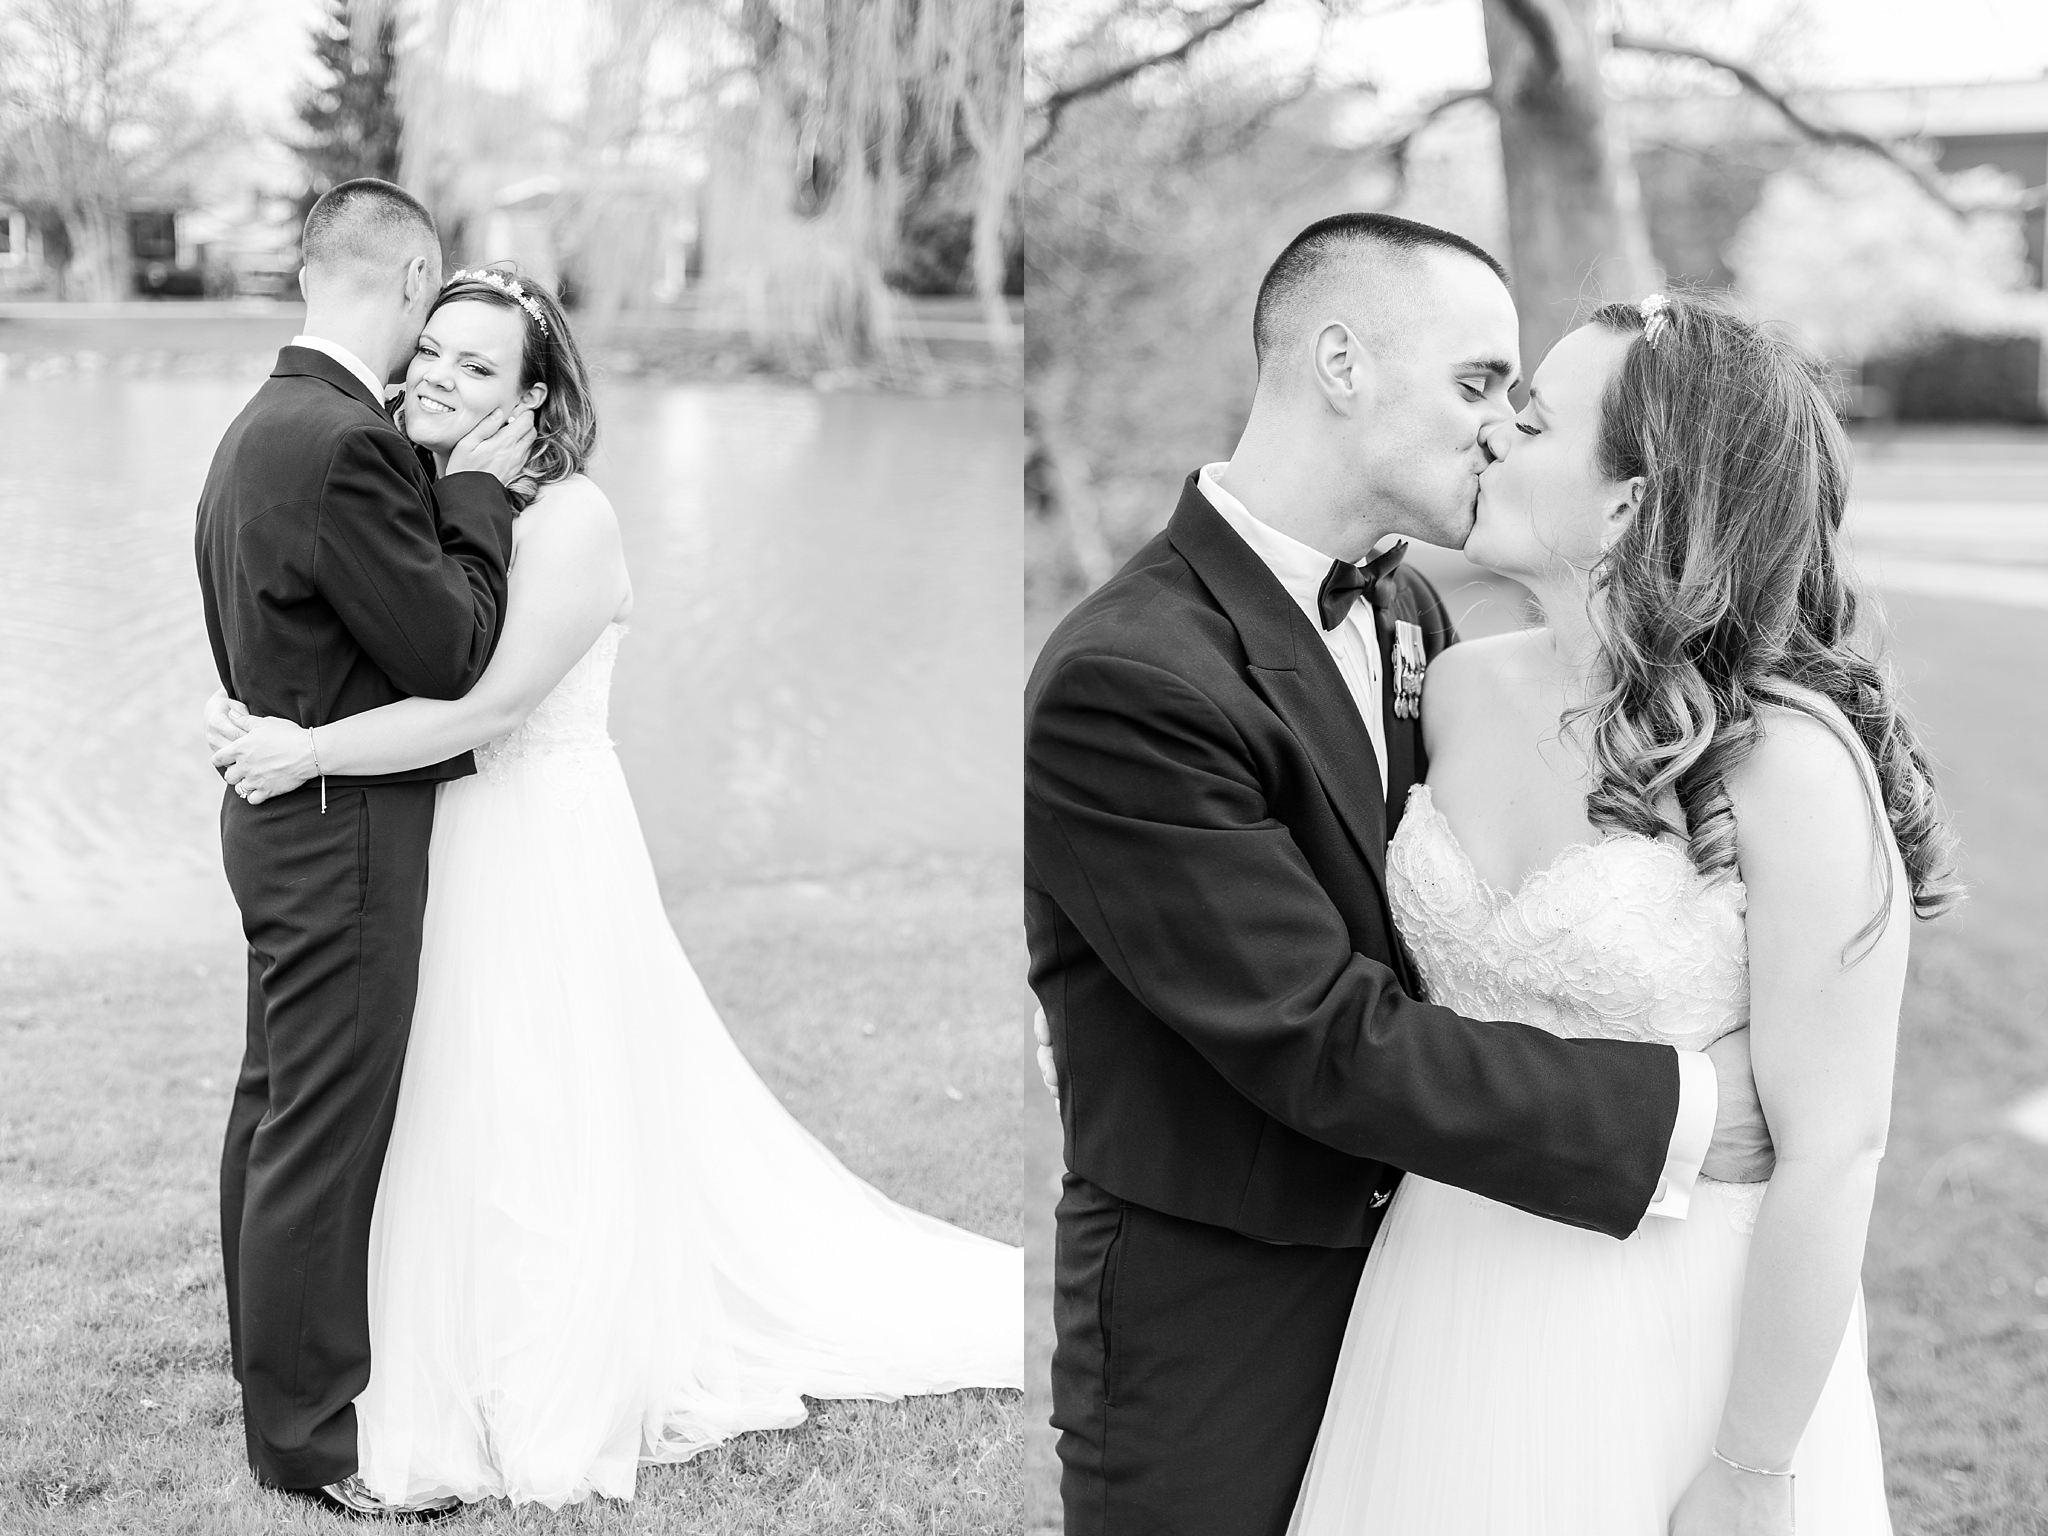 romantic-artful-candid-wedding-photos-in-st-clair-shores-at-the-white-house-wedding-chapel-by-courtney-carolyn-photography_0061.jpg